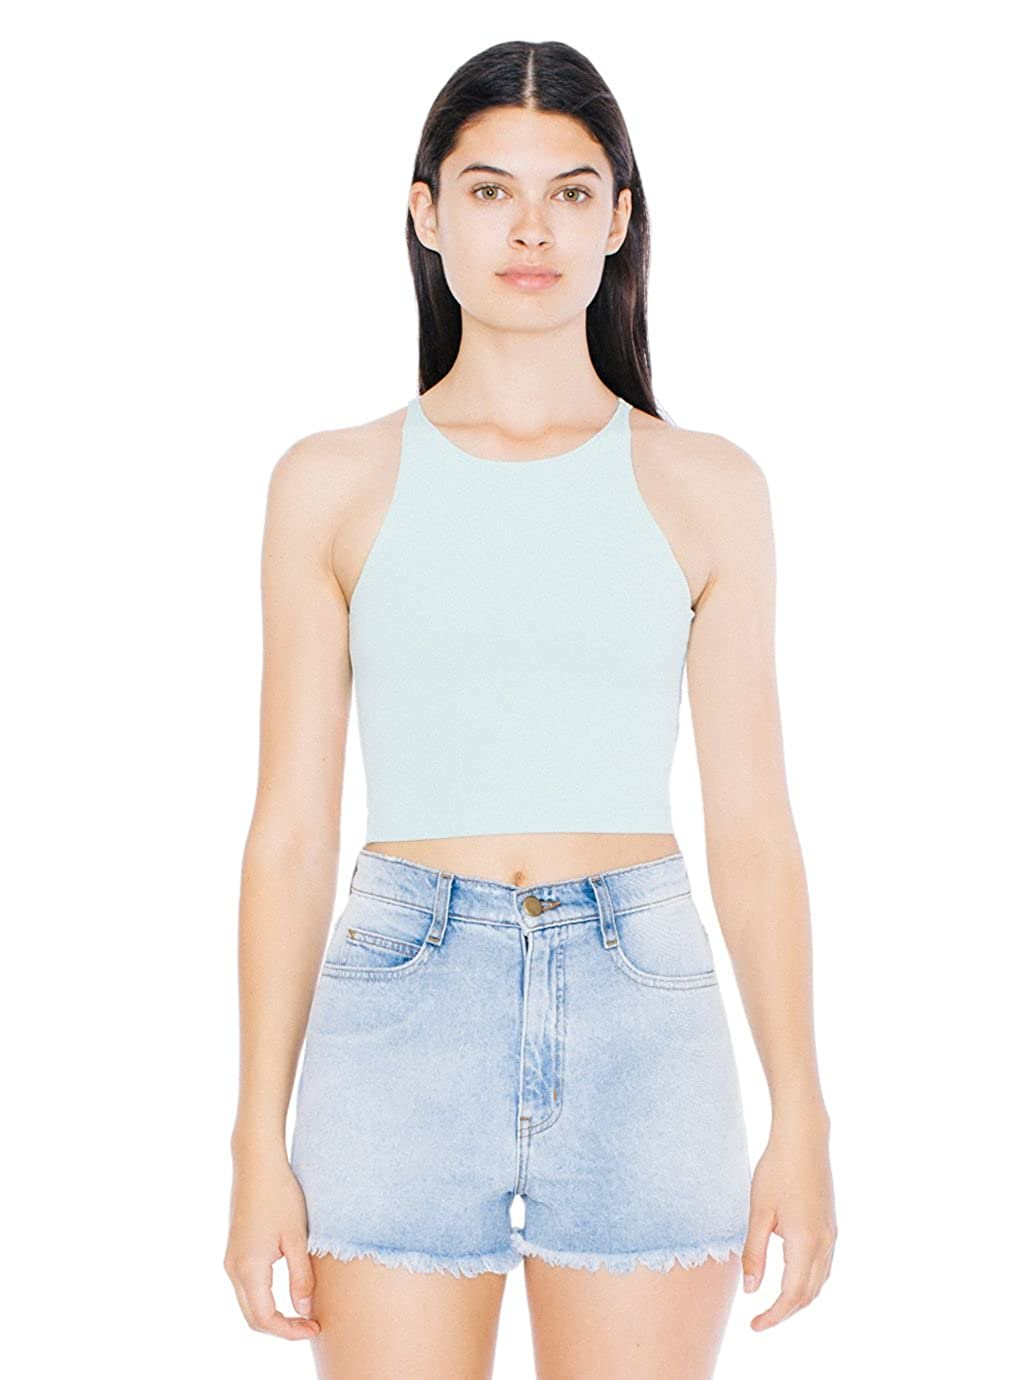 d9b0f77a3e7 Amazon.com: American Apparel Women's Cotton Spandex Sleeveless Crop Top:  Clothing